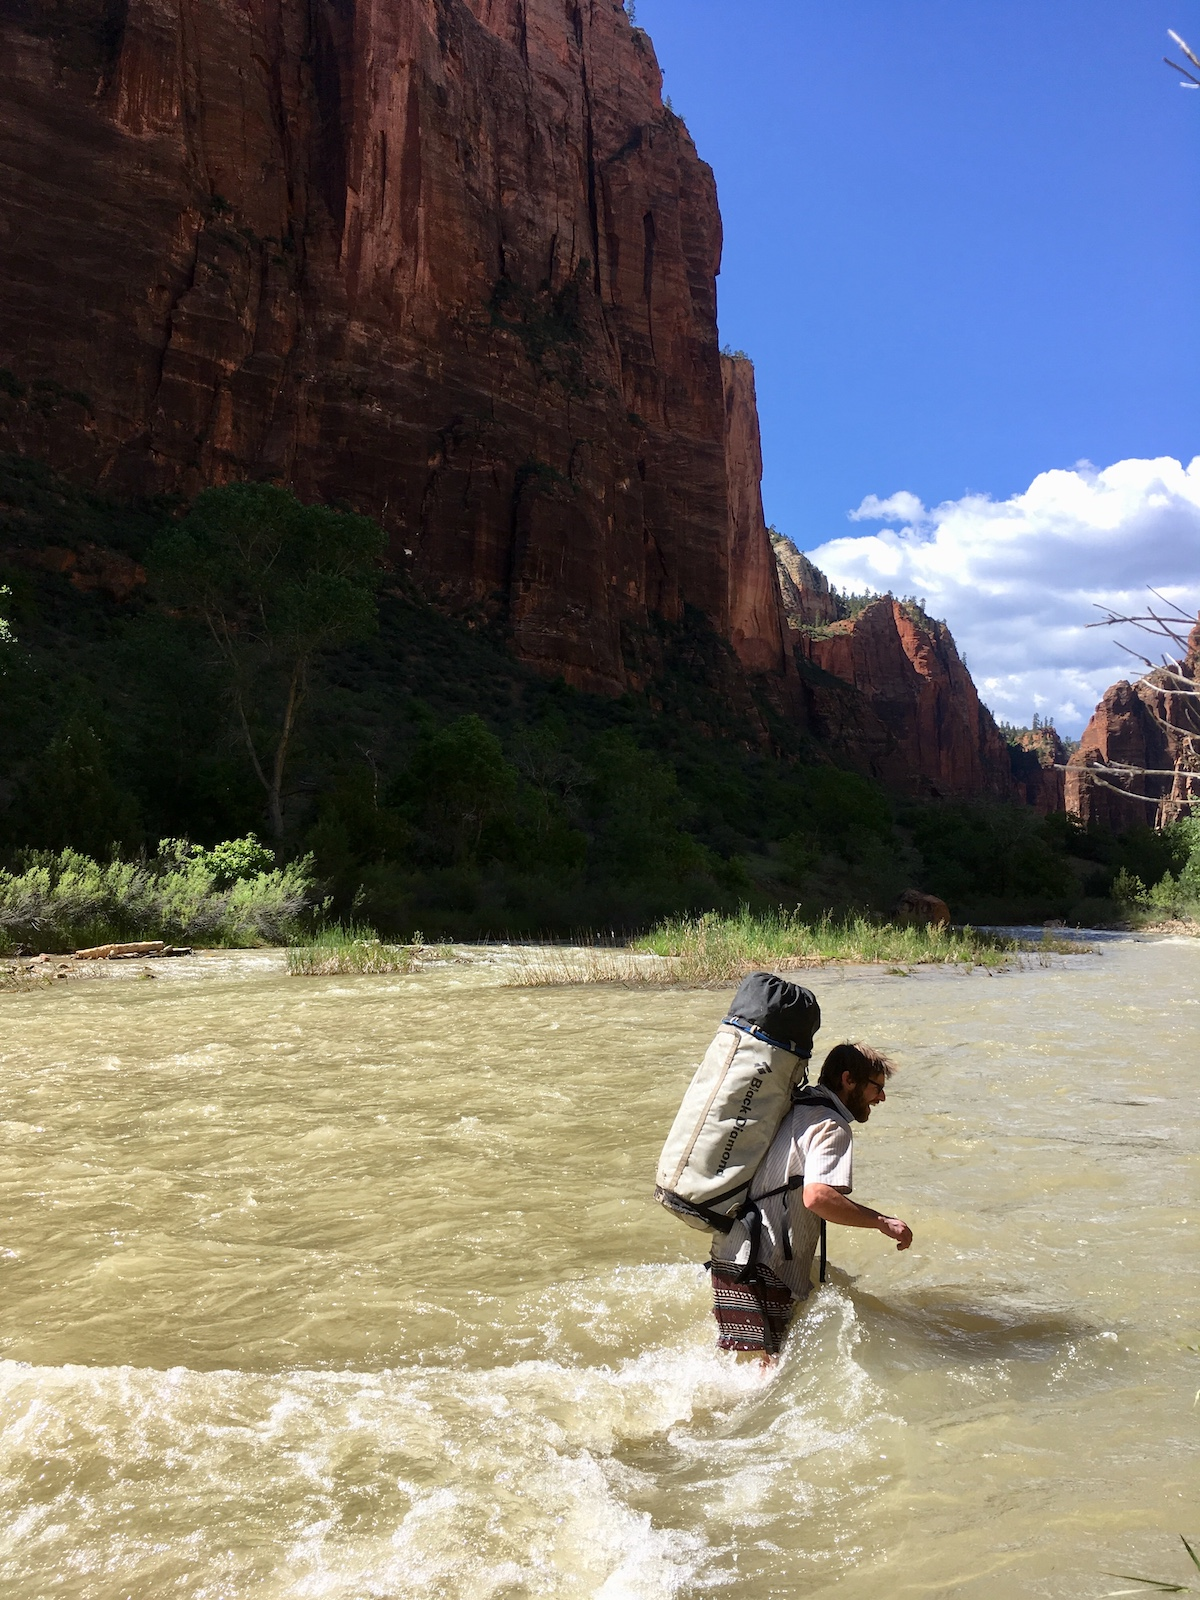 Kalman crossing a swollen Virgin River after climbing Moonlight Buttress. The Octapod fit neatly inside the medium-size haul bag seen here, along with sleeping gear, personal climbing gear, a rack, helmet and poo bag. [Photo] Nelson Klein